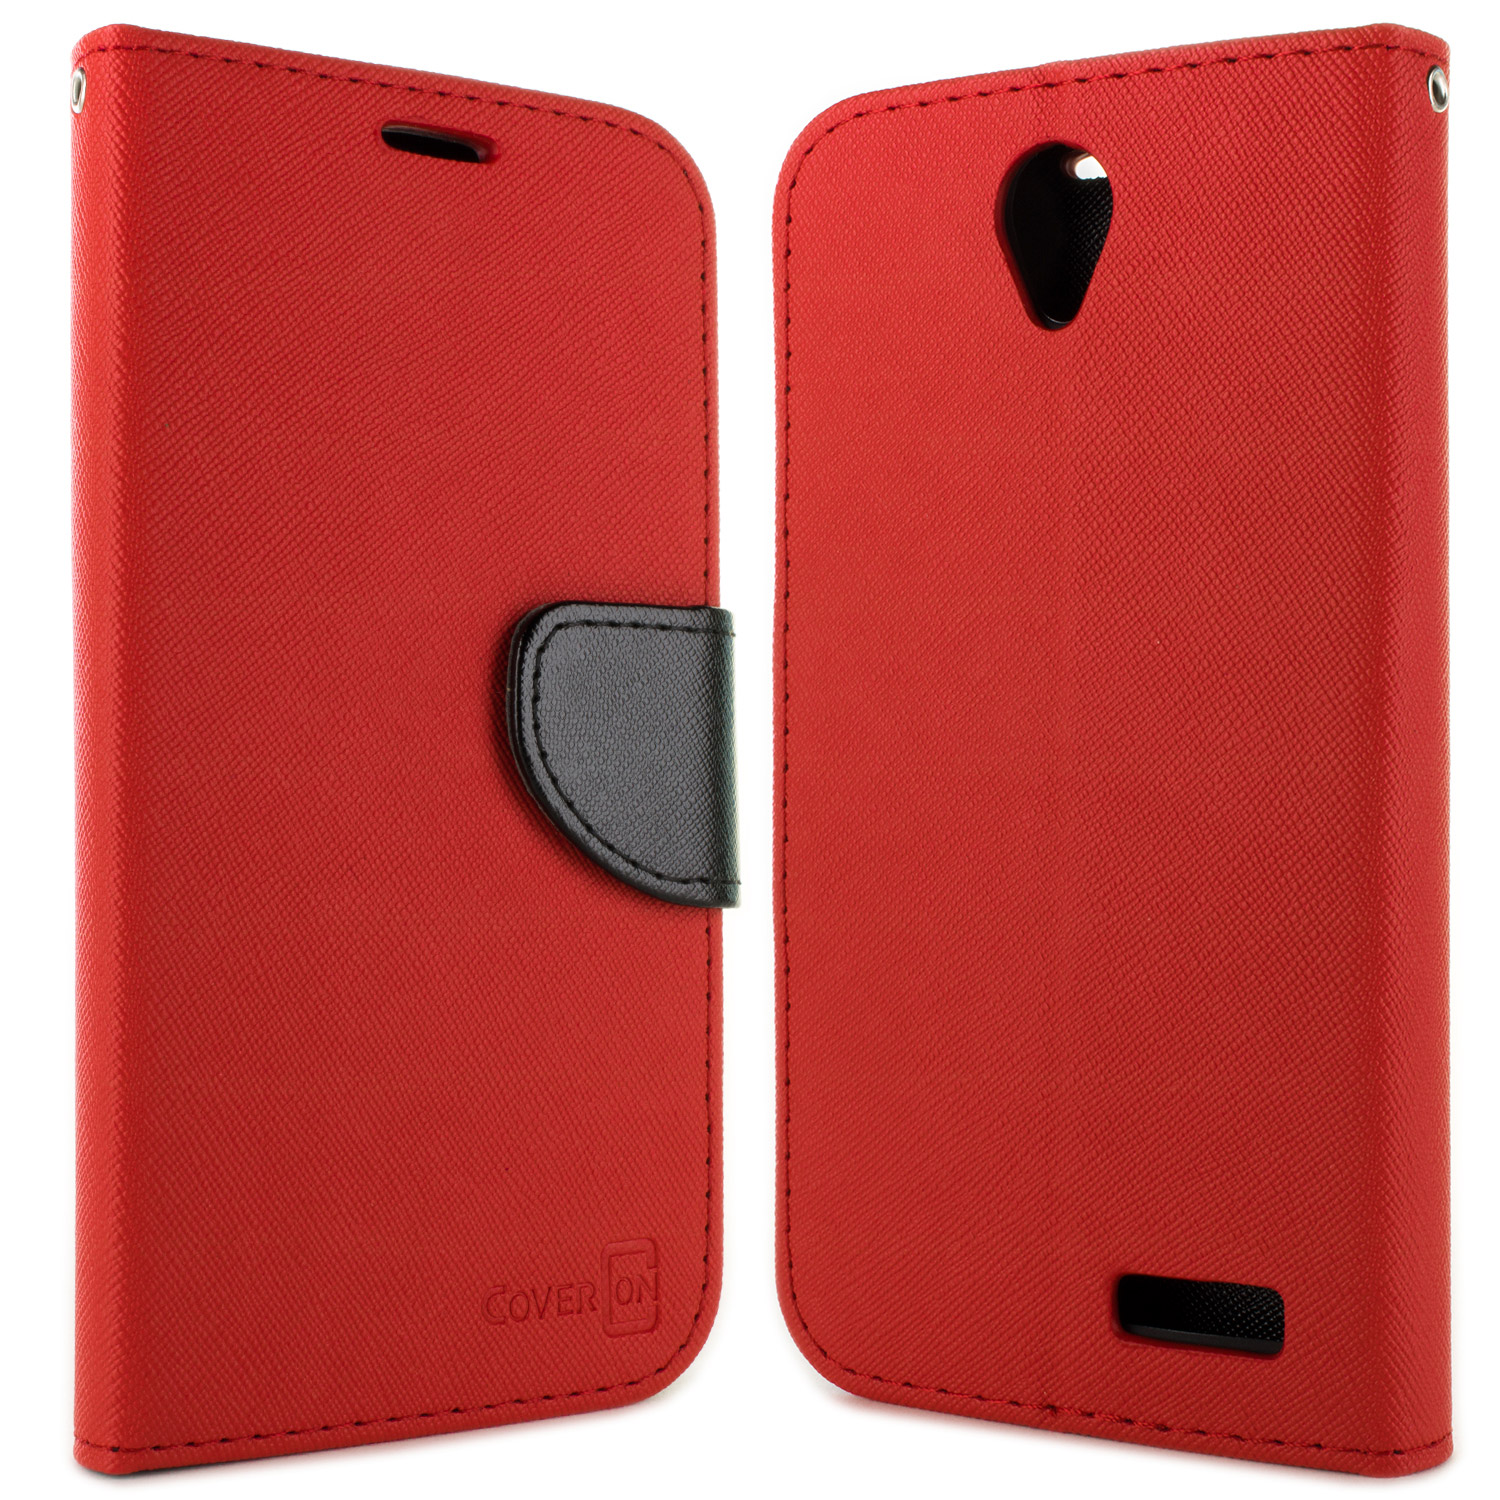 whimsical applications zte avid 916 case overlooked the video